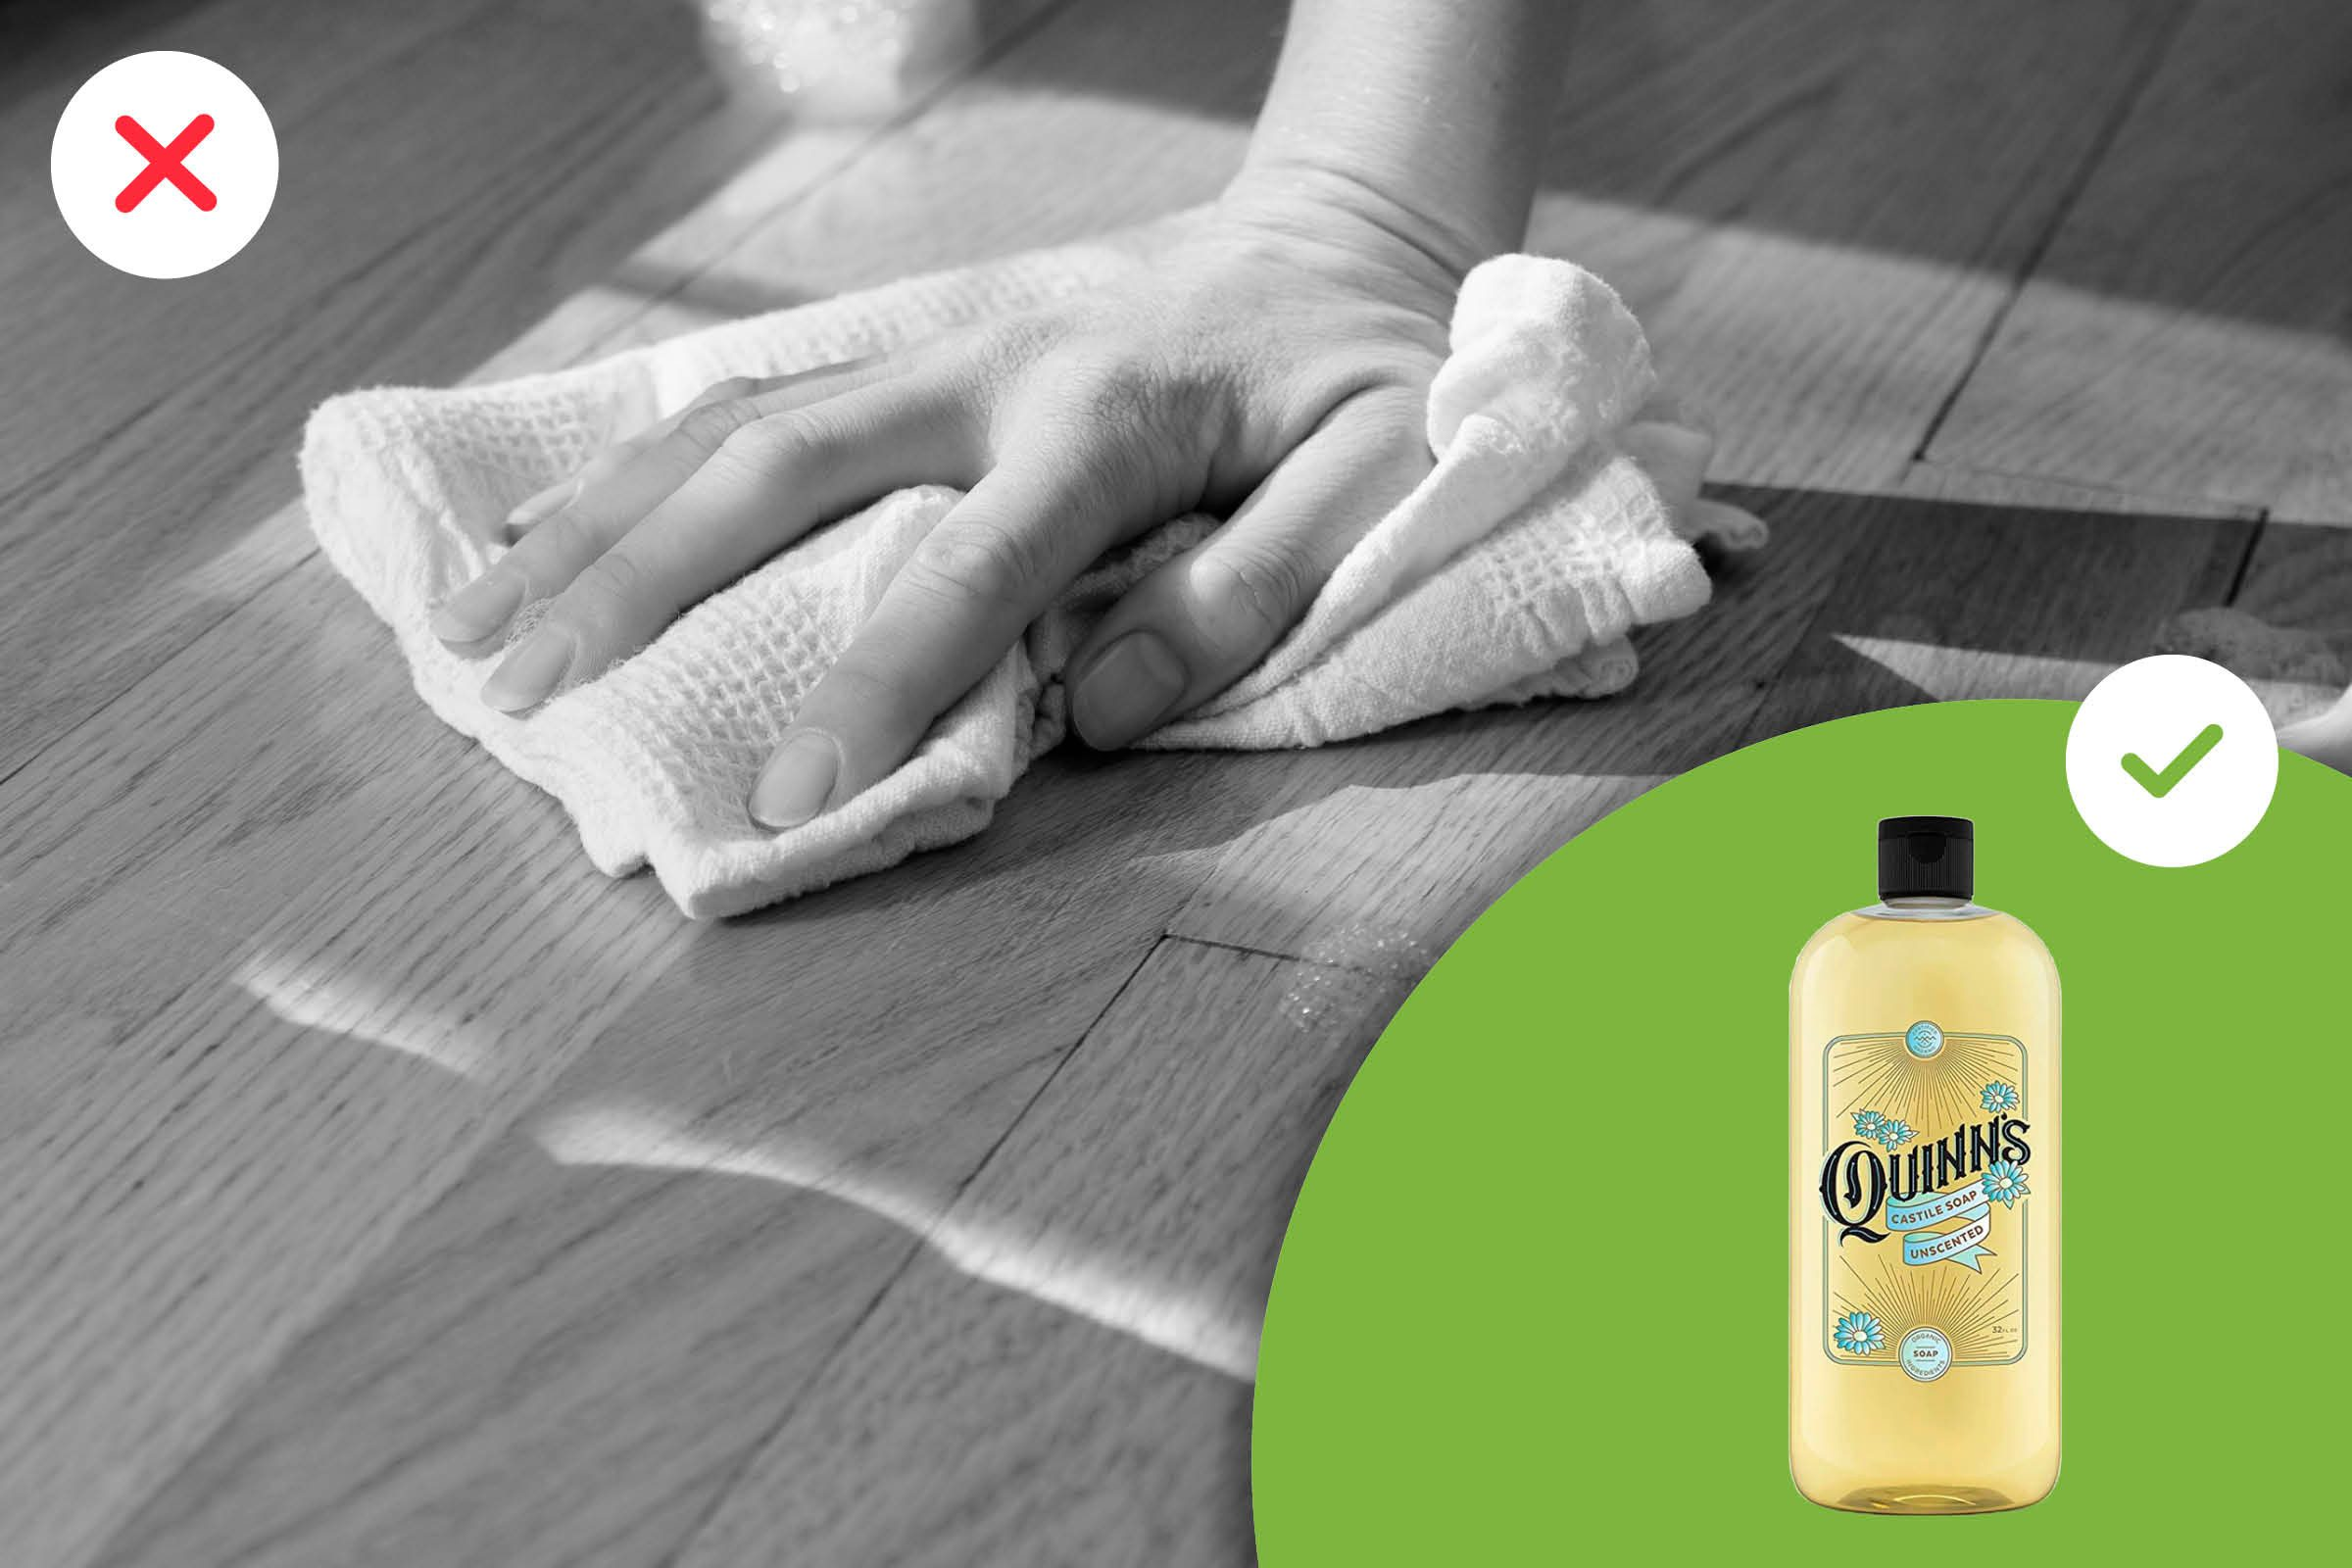 Cleaning a wooden floor